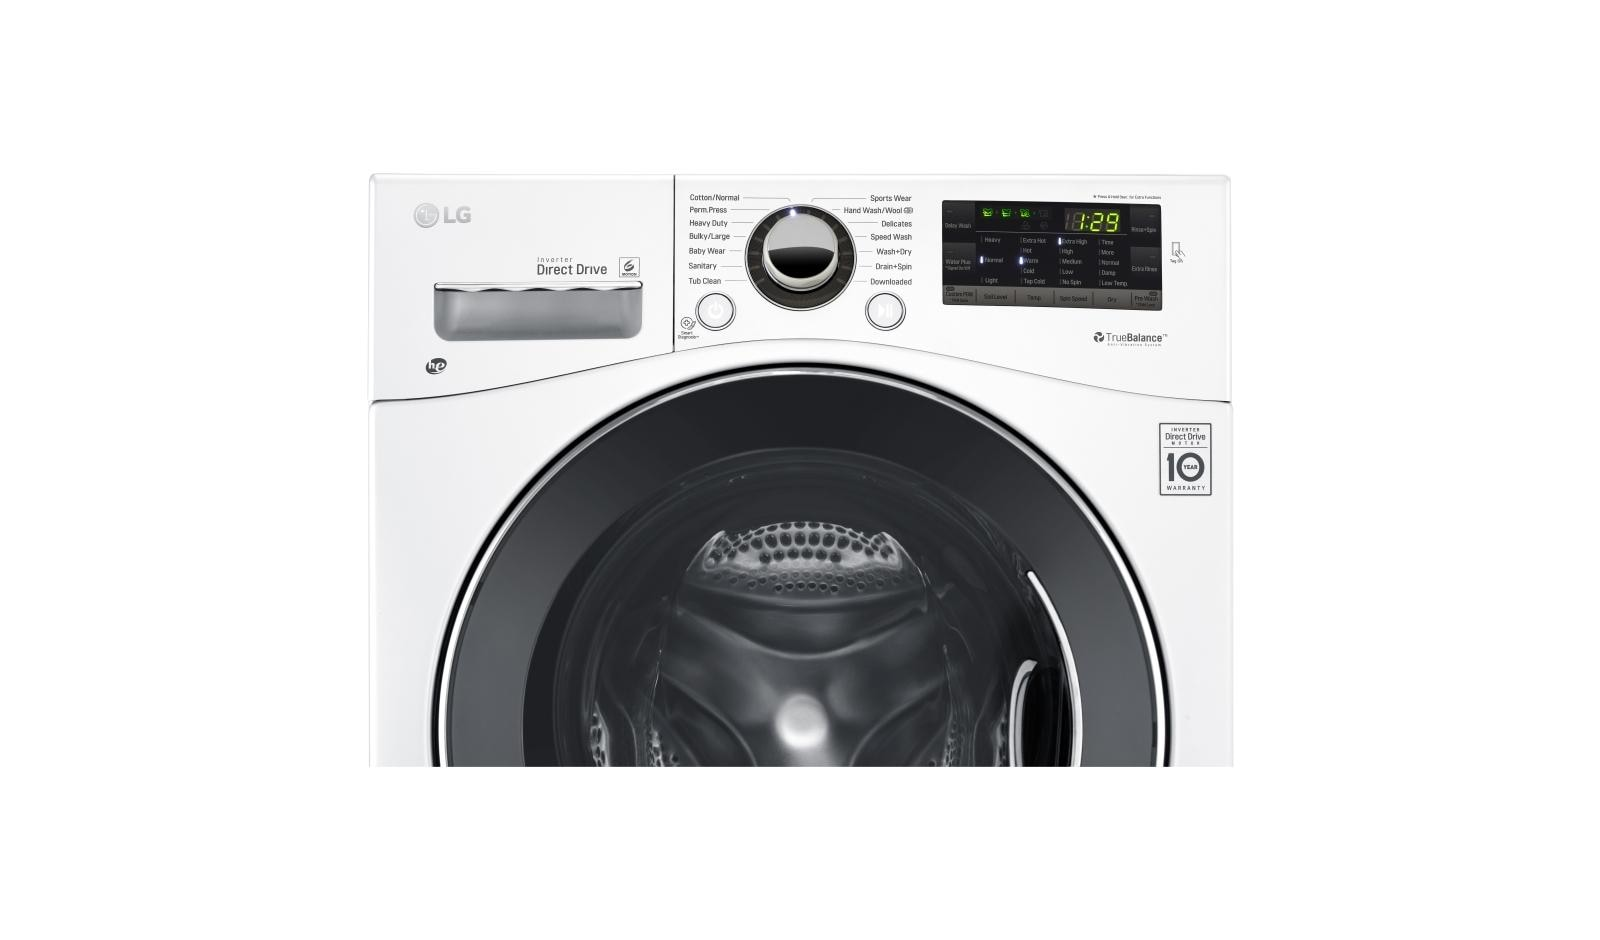 Fascinating Compact Lg Usa Lg Compact Lg Usa Dryer Won T Spin Kenmore Tumble Dryer Won T Spin houzz 01 Dryer Wont Spin